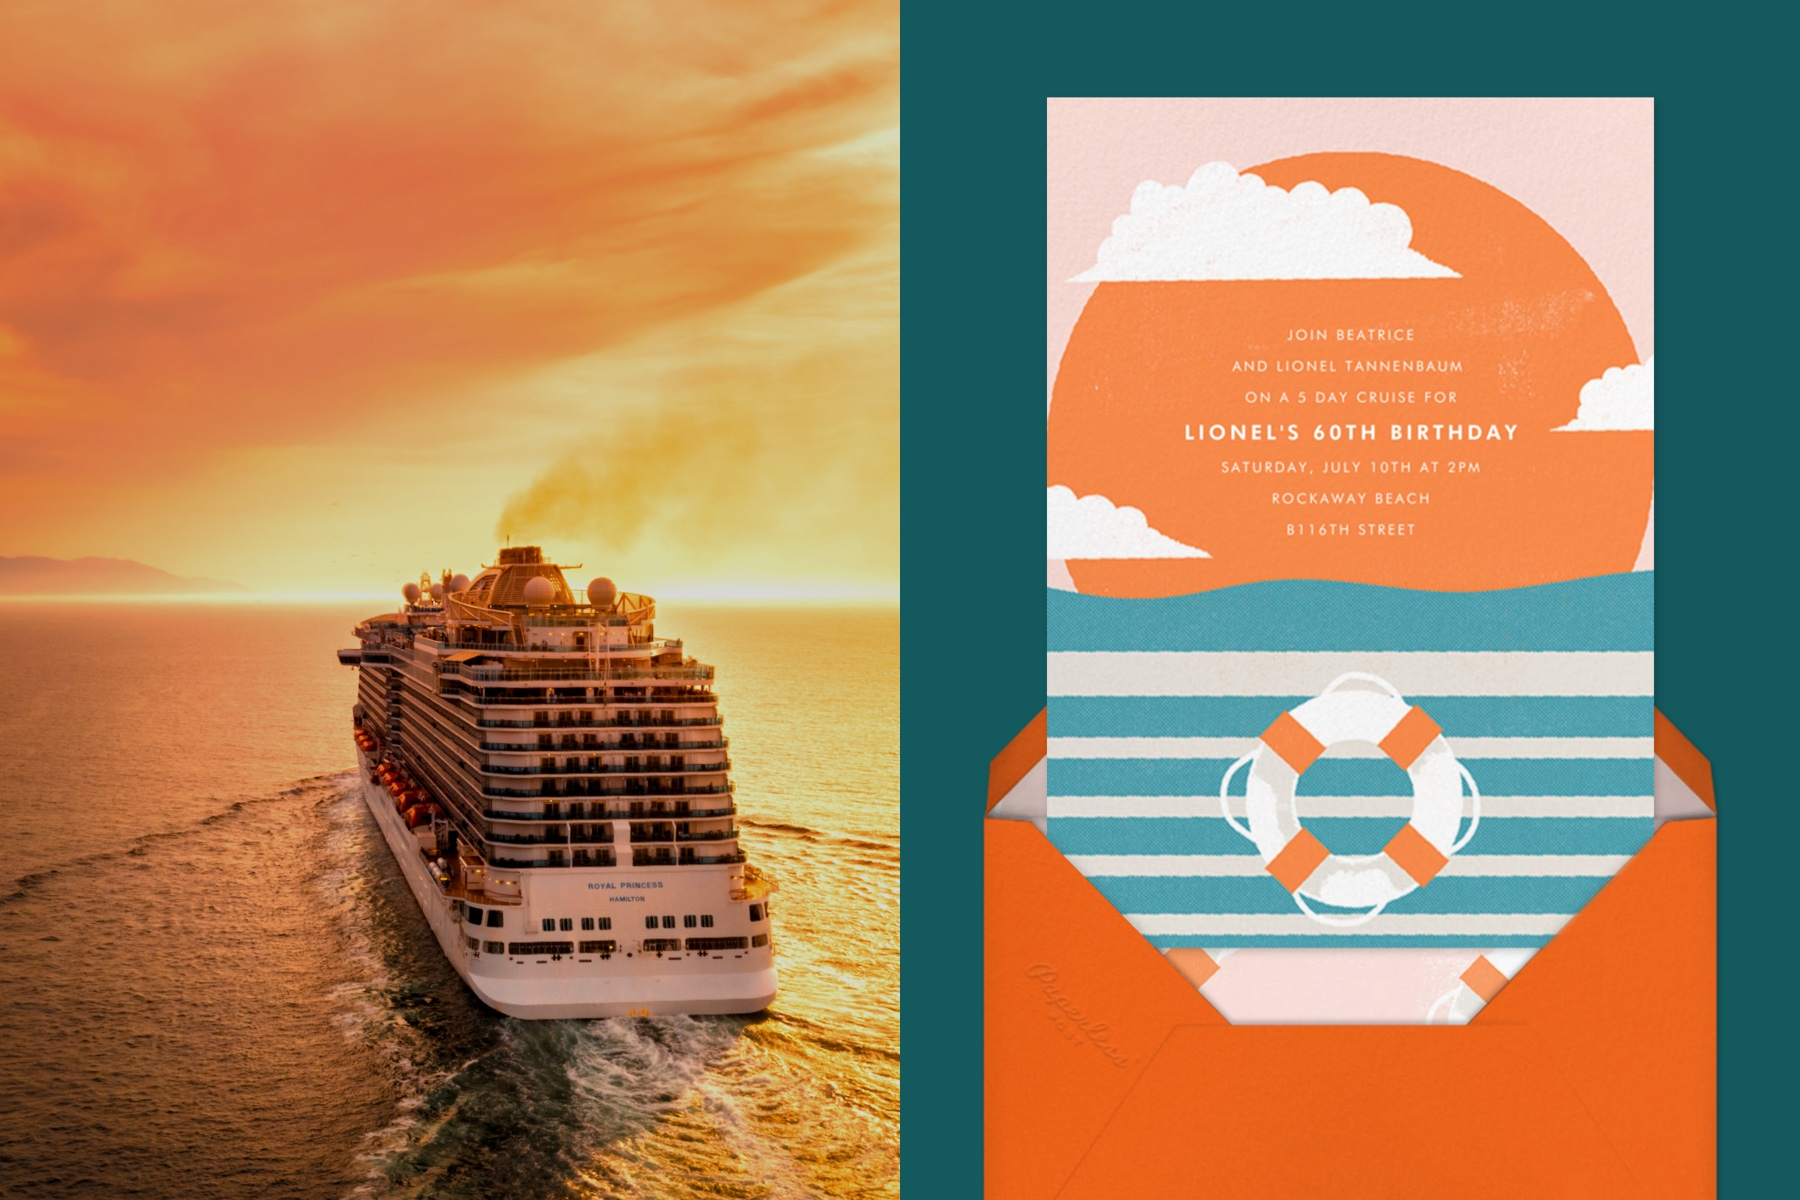 """Left: A cruise ship at sunset.   Right: """"Sailor's Delight"""" invitation by Paperless Post featuring an illustration of an orange life saver and sunset on a teal background."""